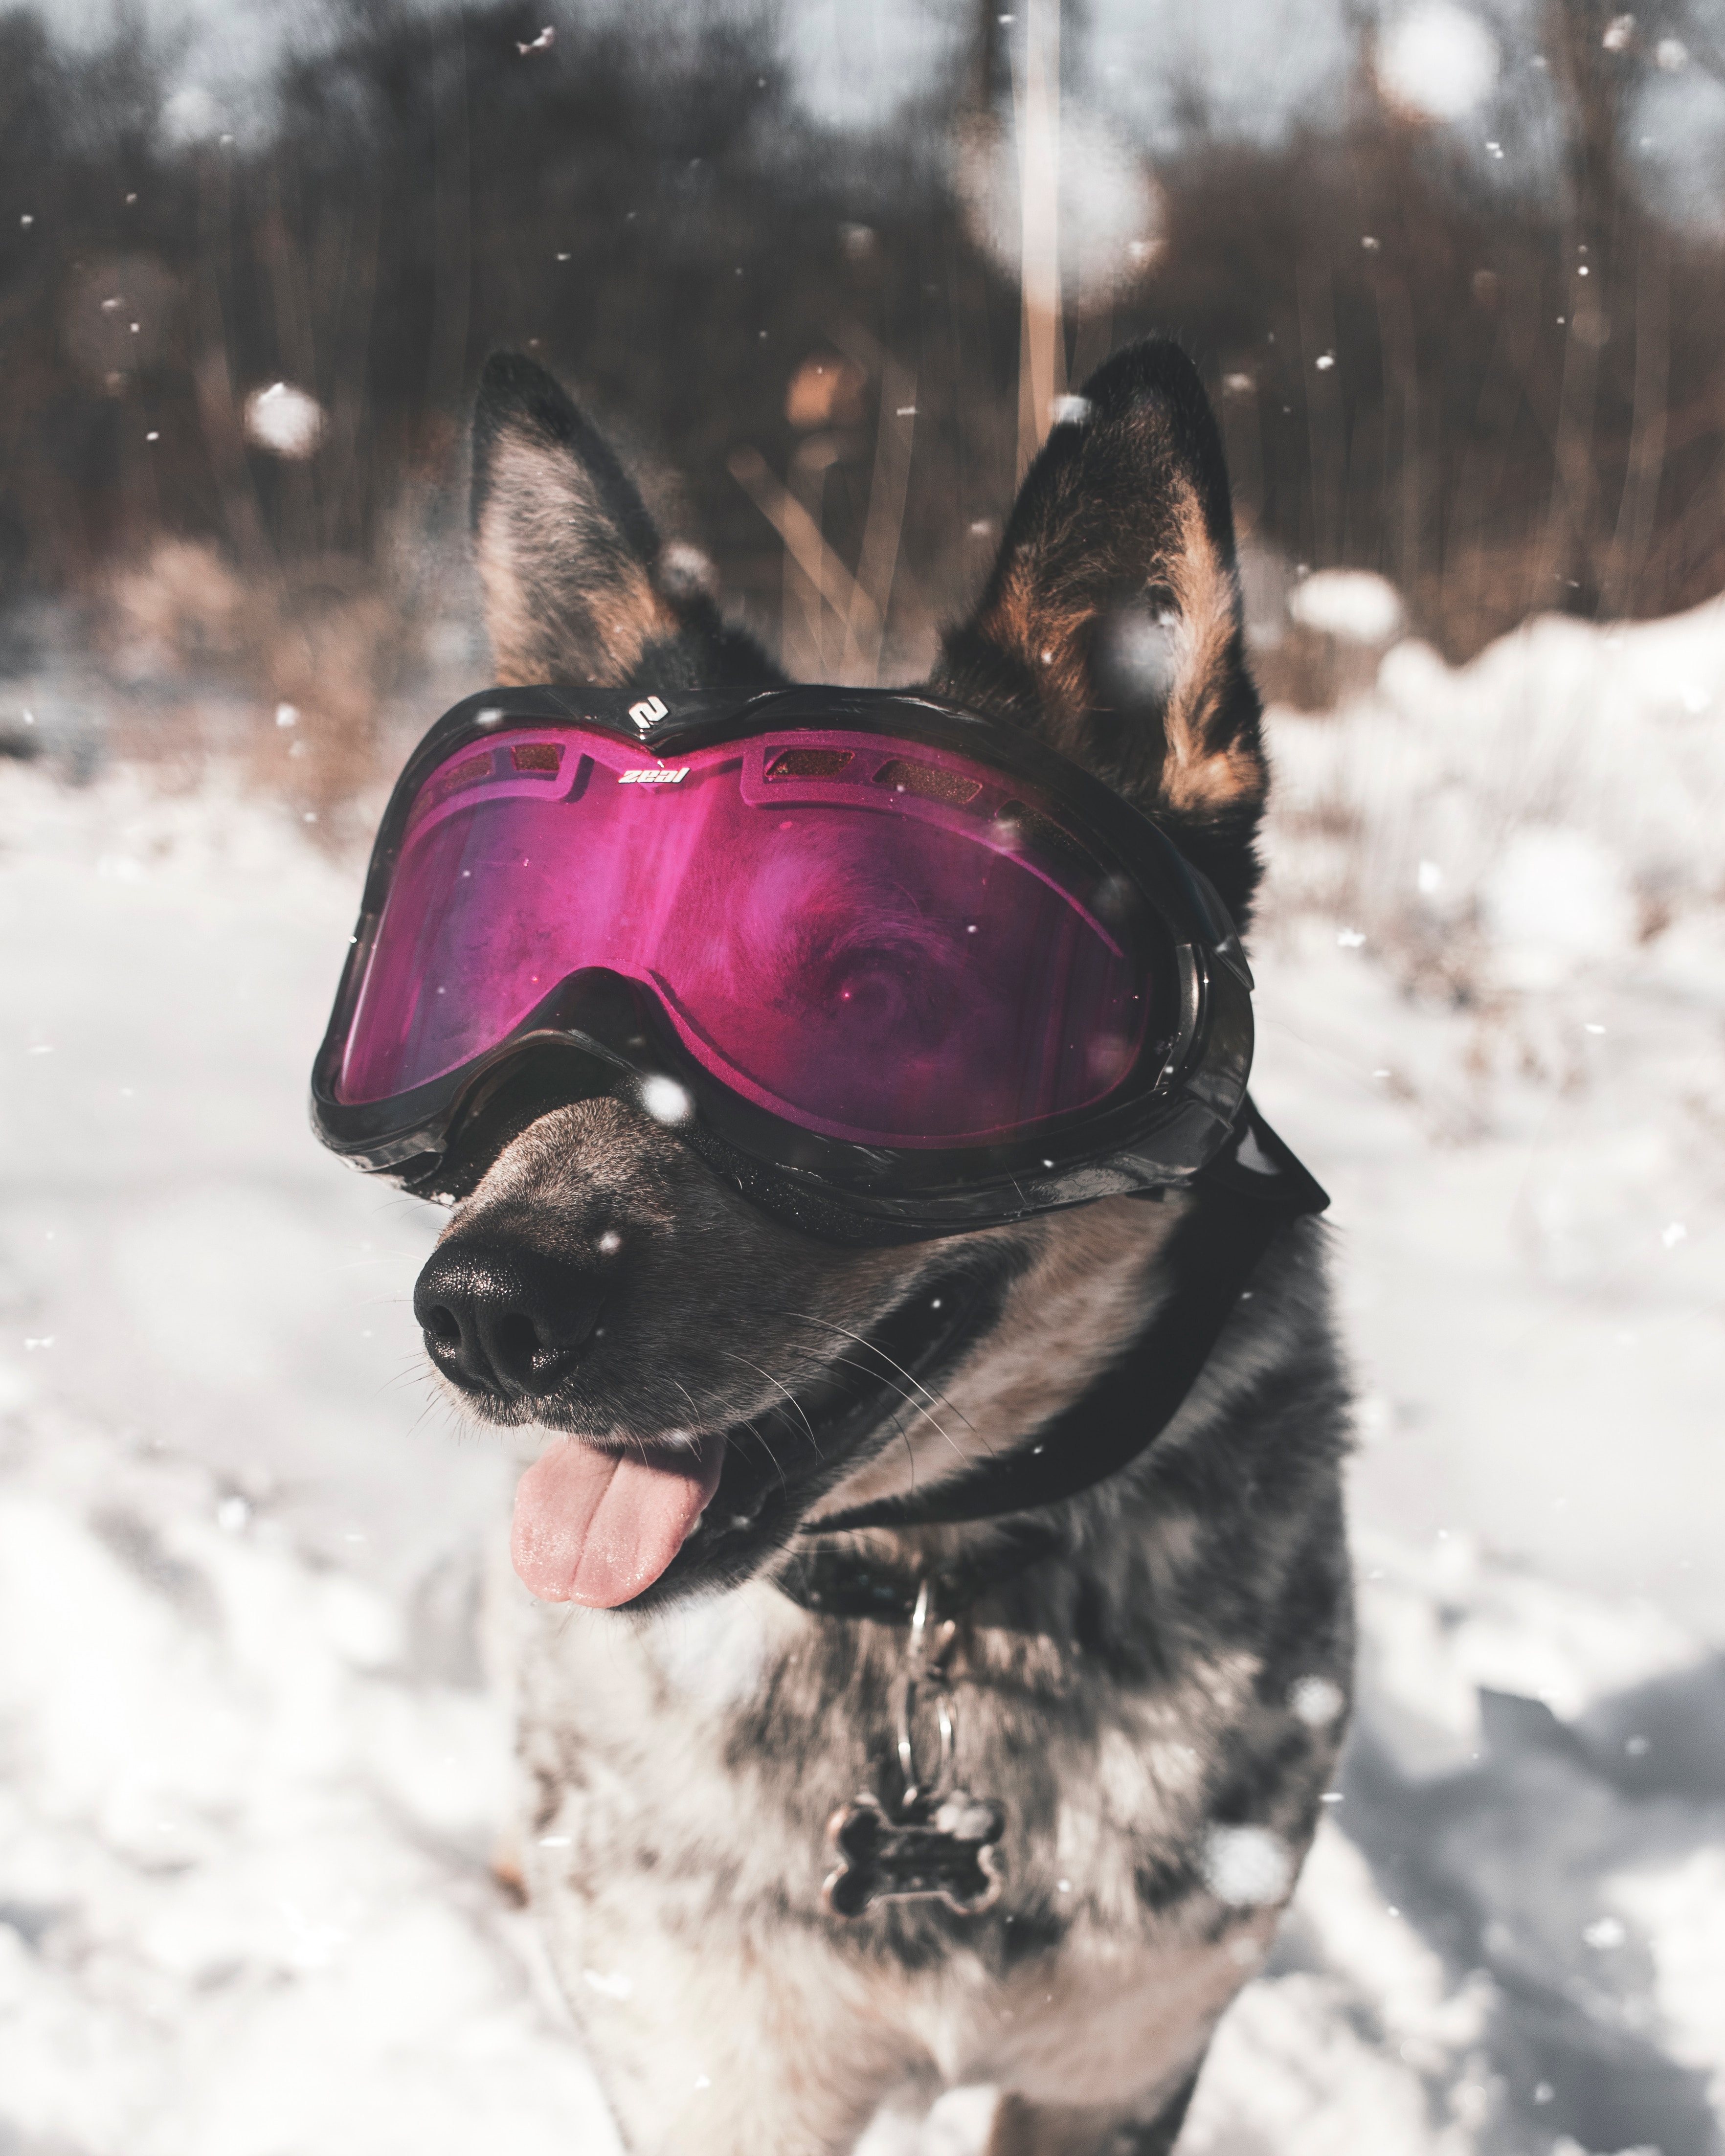 117336 download wallpaper Animals, Dog, Glasses, Spectacles, Winter, Cool, Stylish screensavers and pictures for free